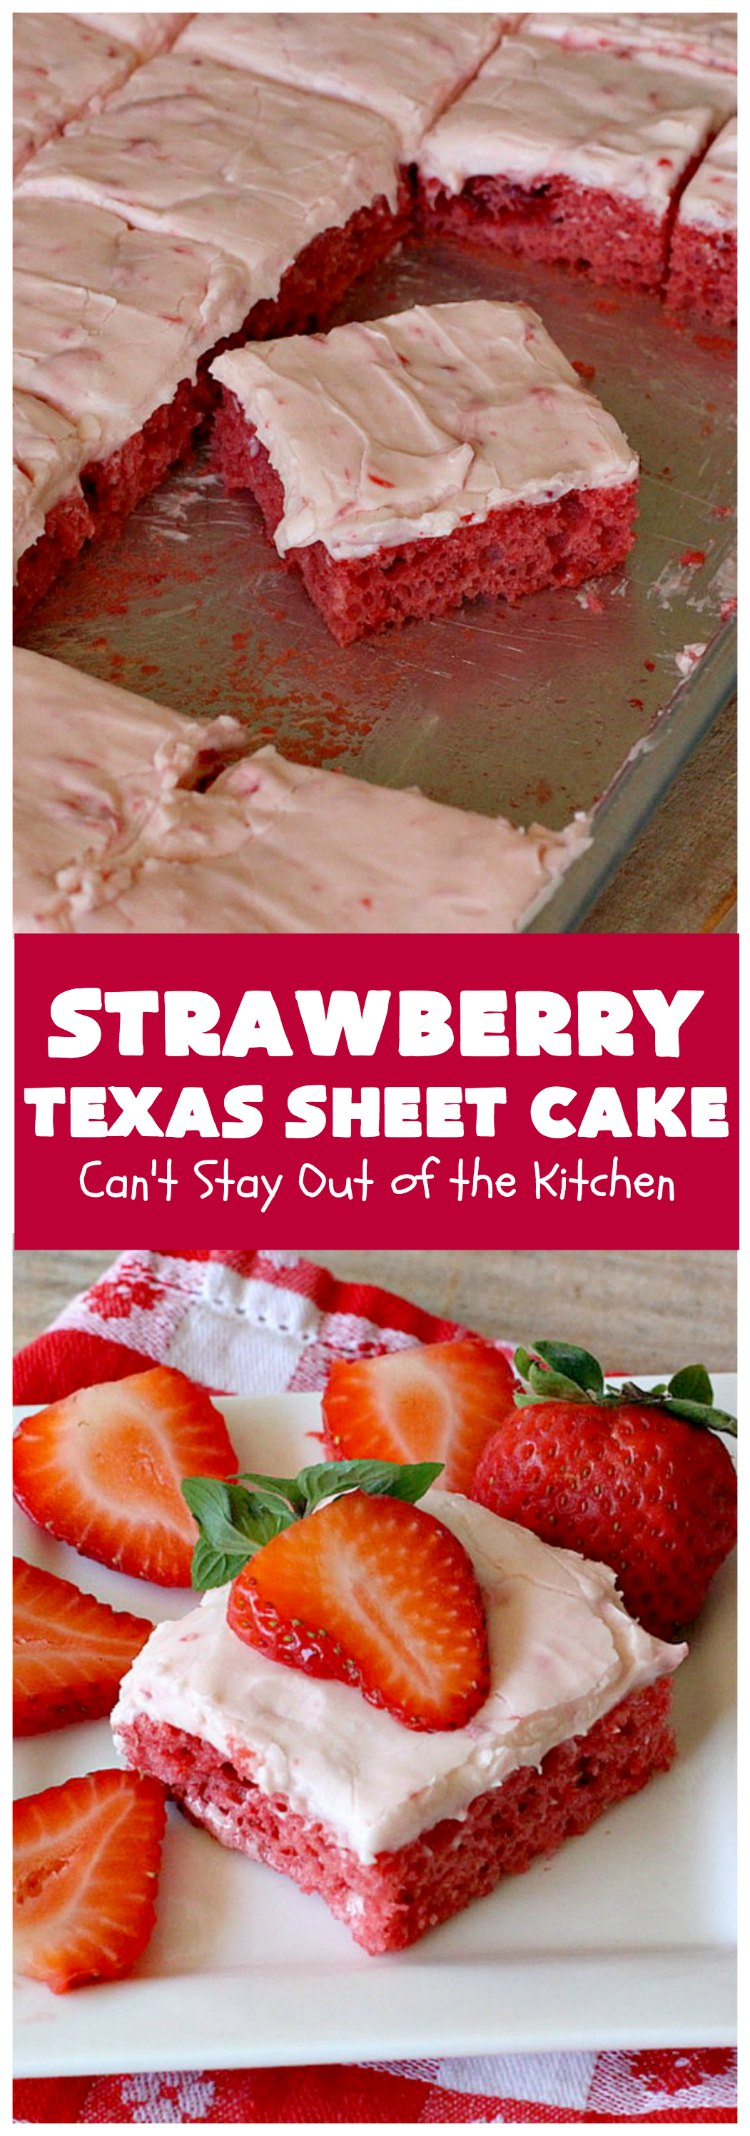 Strawberry Texas Sheet Cake | Can't Stay Out of the Kitchen | this amazing #dessert will have you drooling from the first bite! The #CreamCheese icing is fantastic. Perfect #cake for company or #holidays because it feeds a crowd and everyone wants seconds! #SheetCake #TexasSheetCake #strawberries #StrawberryTexasSheetCake #HolidayDessert #Christmas #ValentinesDay